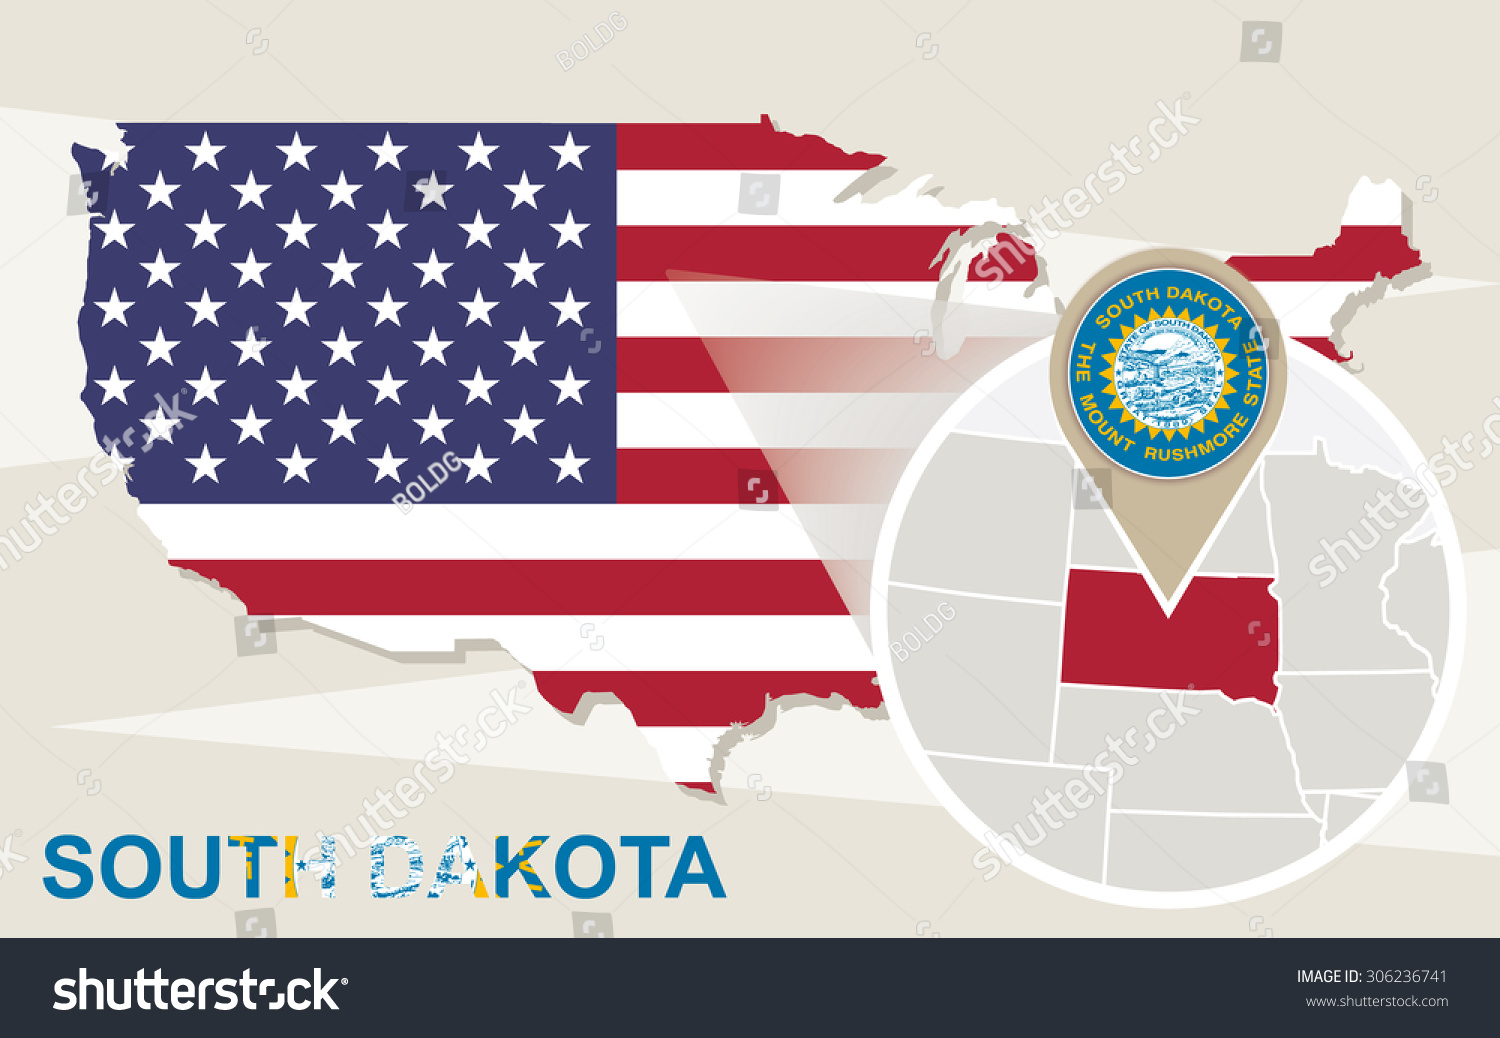 Usa Map Magnified South Dakota State Stock Vector 306236741